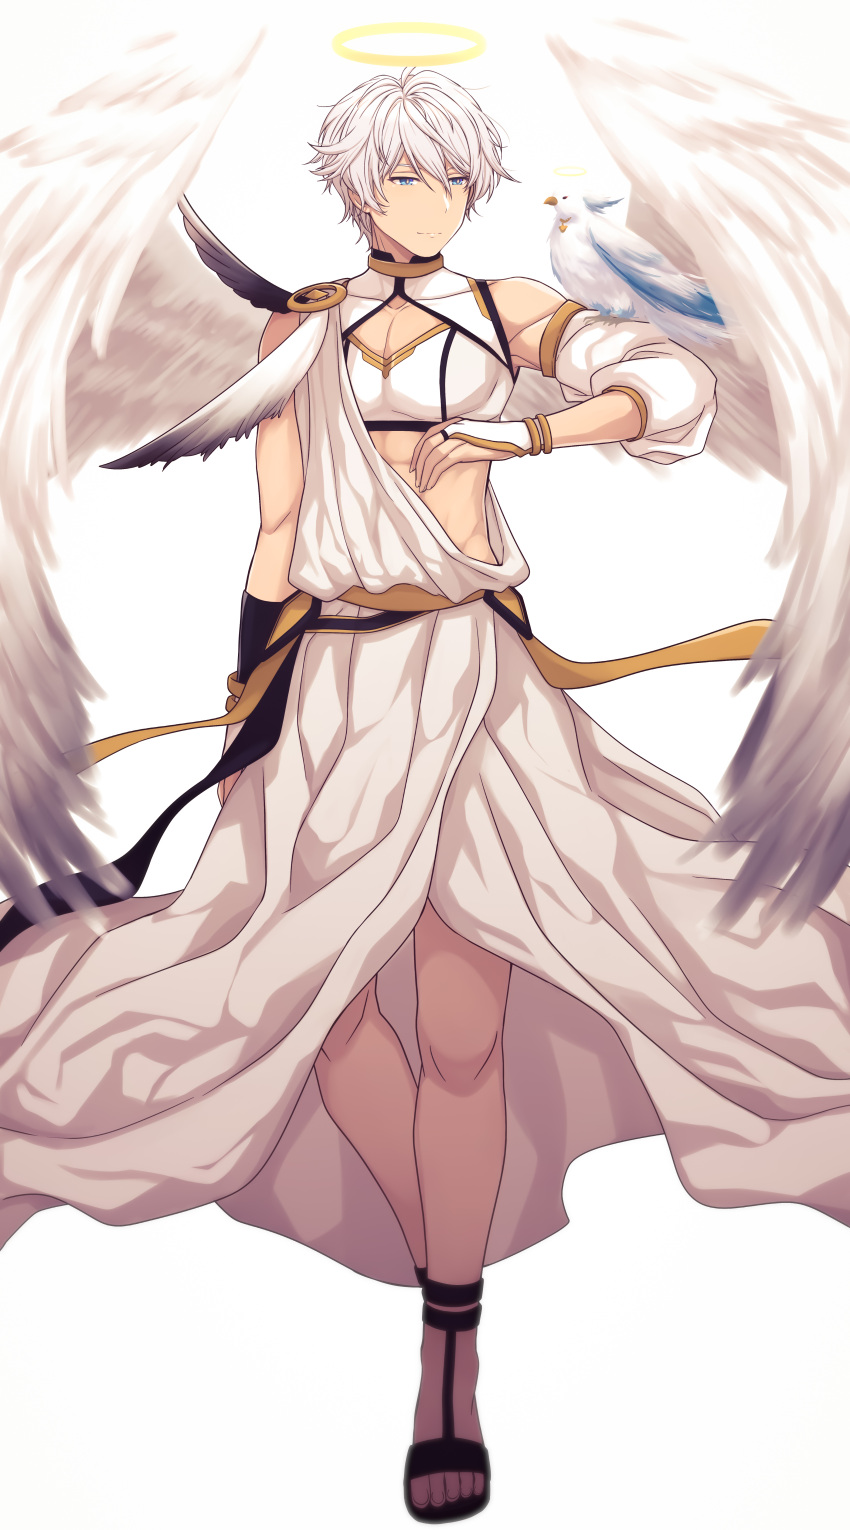 1boy abs absurdres angel angel_wings asymmetrical_gloves bangs bare_shoulders bird black_gloves fingerless_gloves full_body gloves hair_between_eyes halo highres honkai_(series) honkai_impact_3rd kaixuan_lushang kevin_kaslana looking_at_animal mismatched_gloves muscular muscular_male sandals short_hair simple_background solo toes toga white_background white_bird white_gloves wings